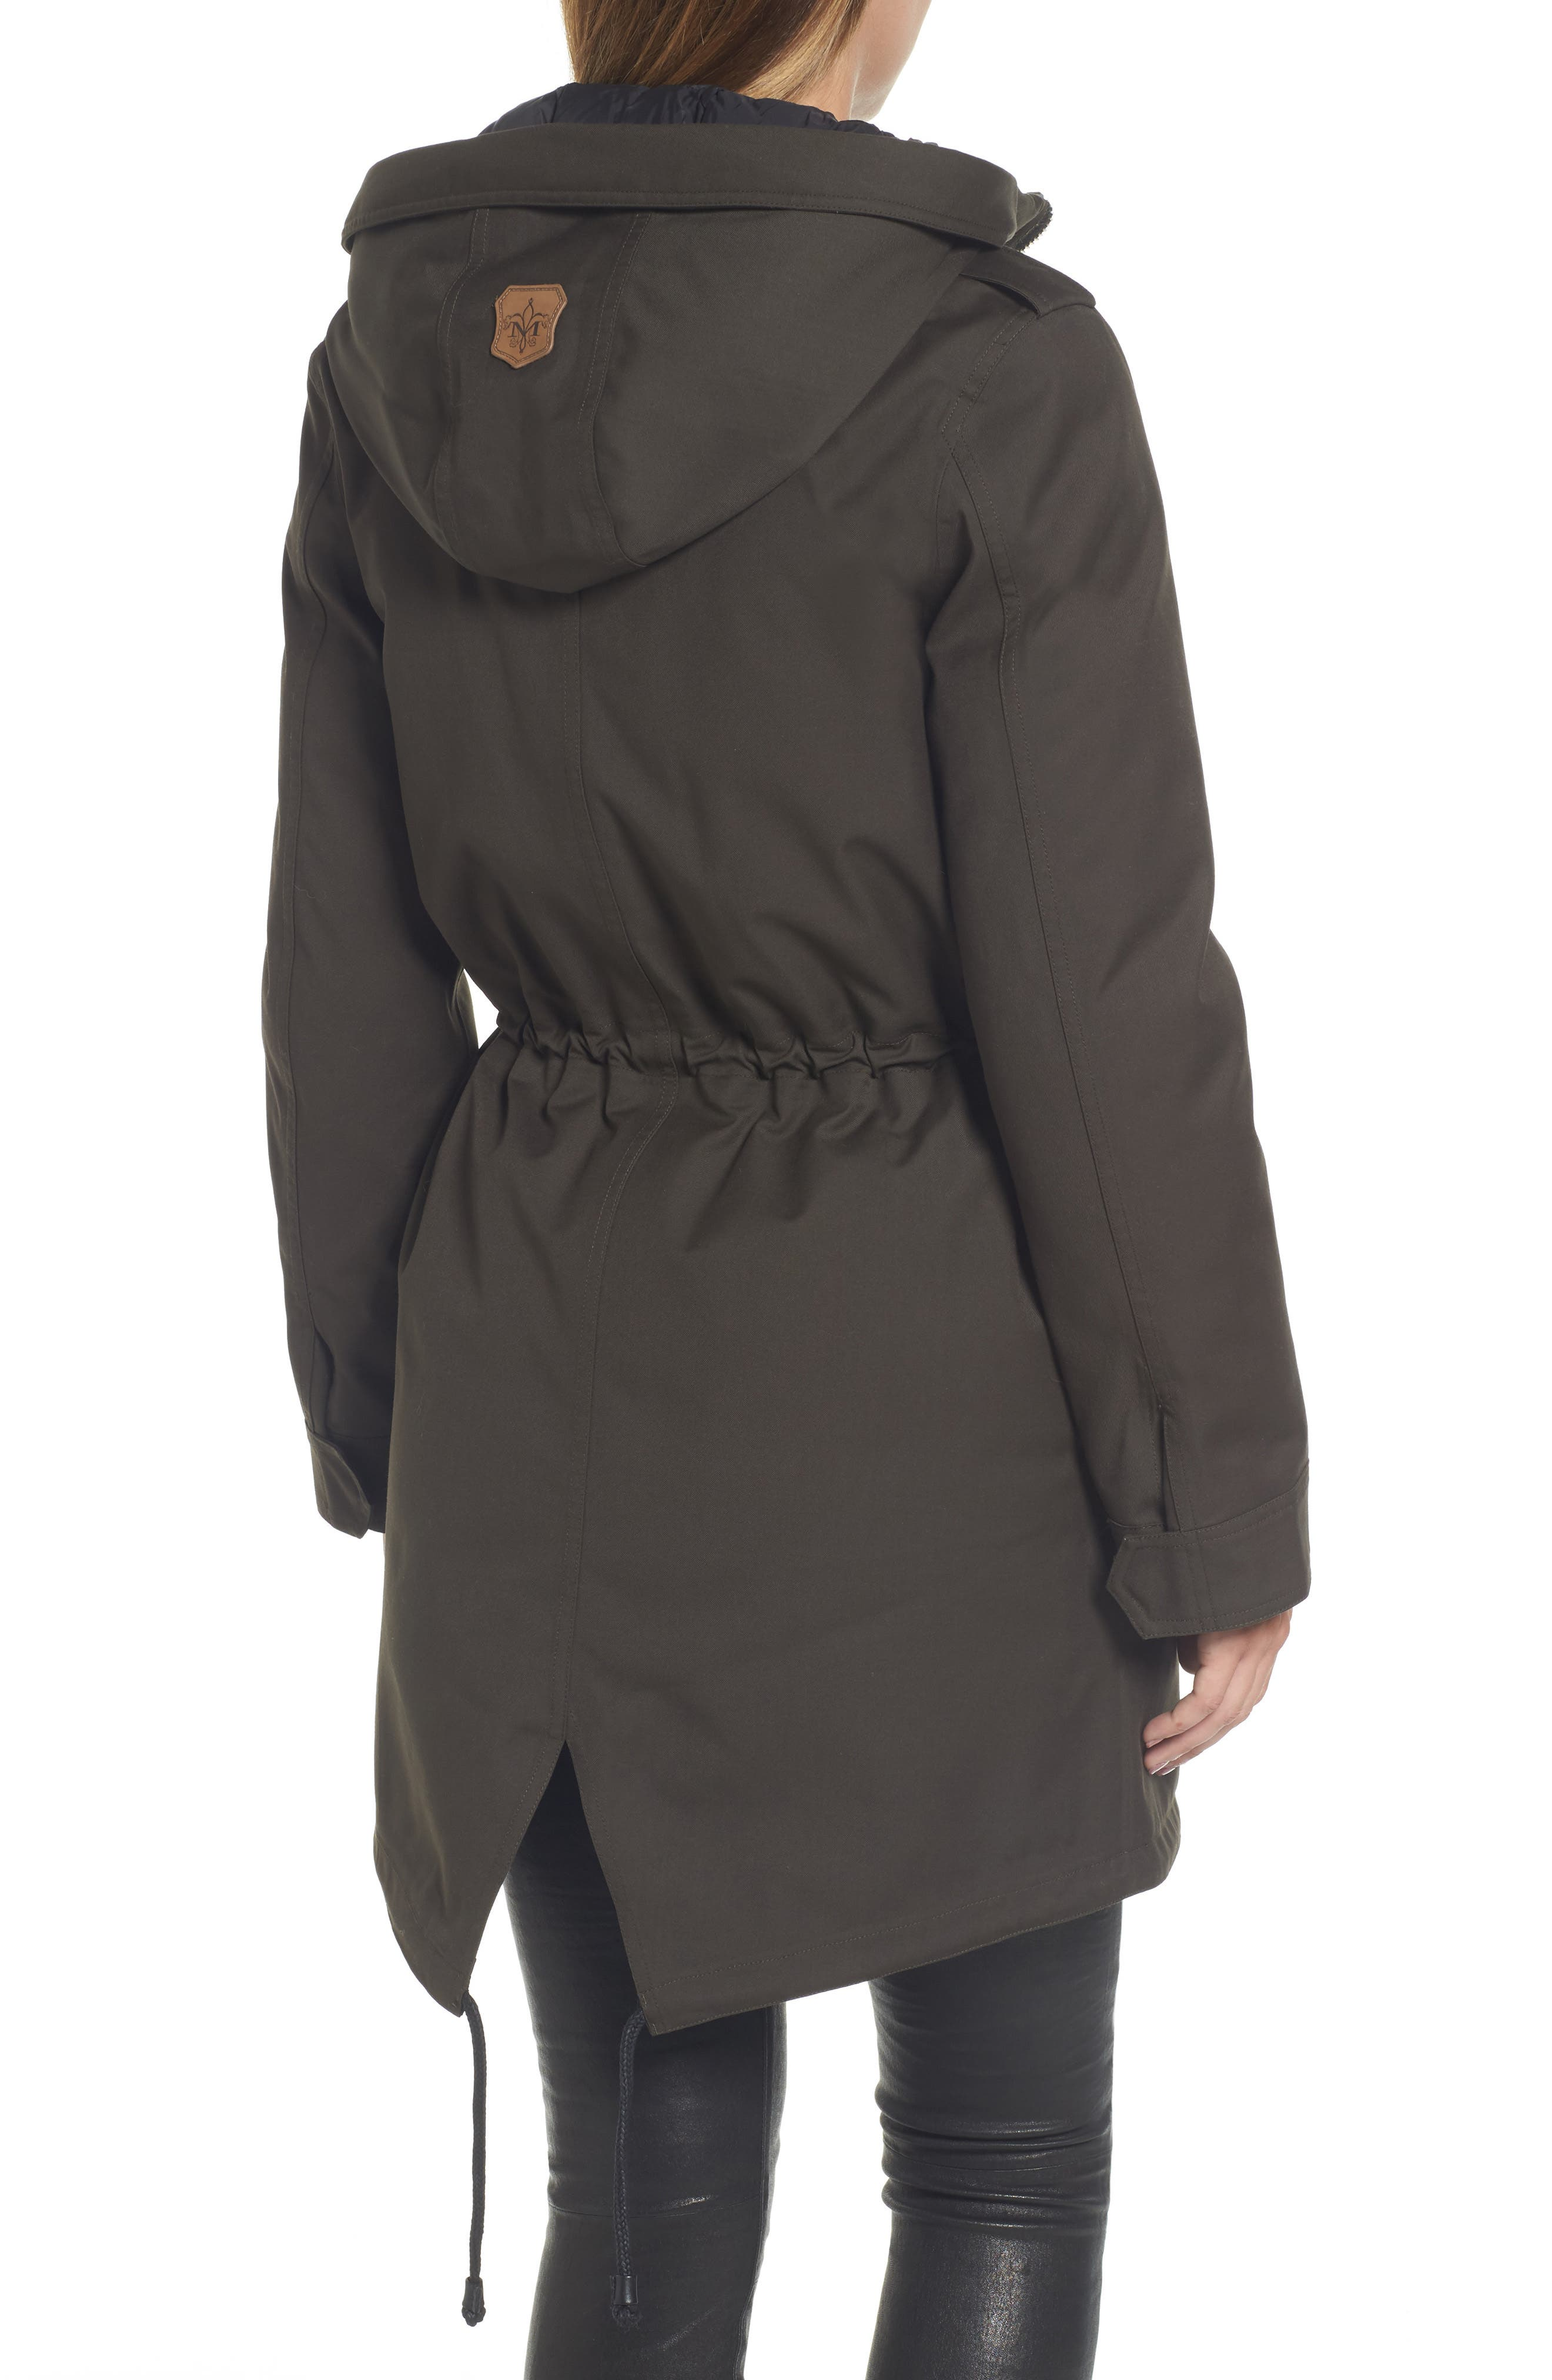 Rada-SP Hooded Raincoat with Removable Down Liner,                             Alternate thumbnail 2, color,                             355